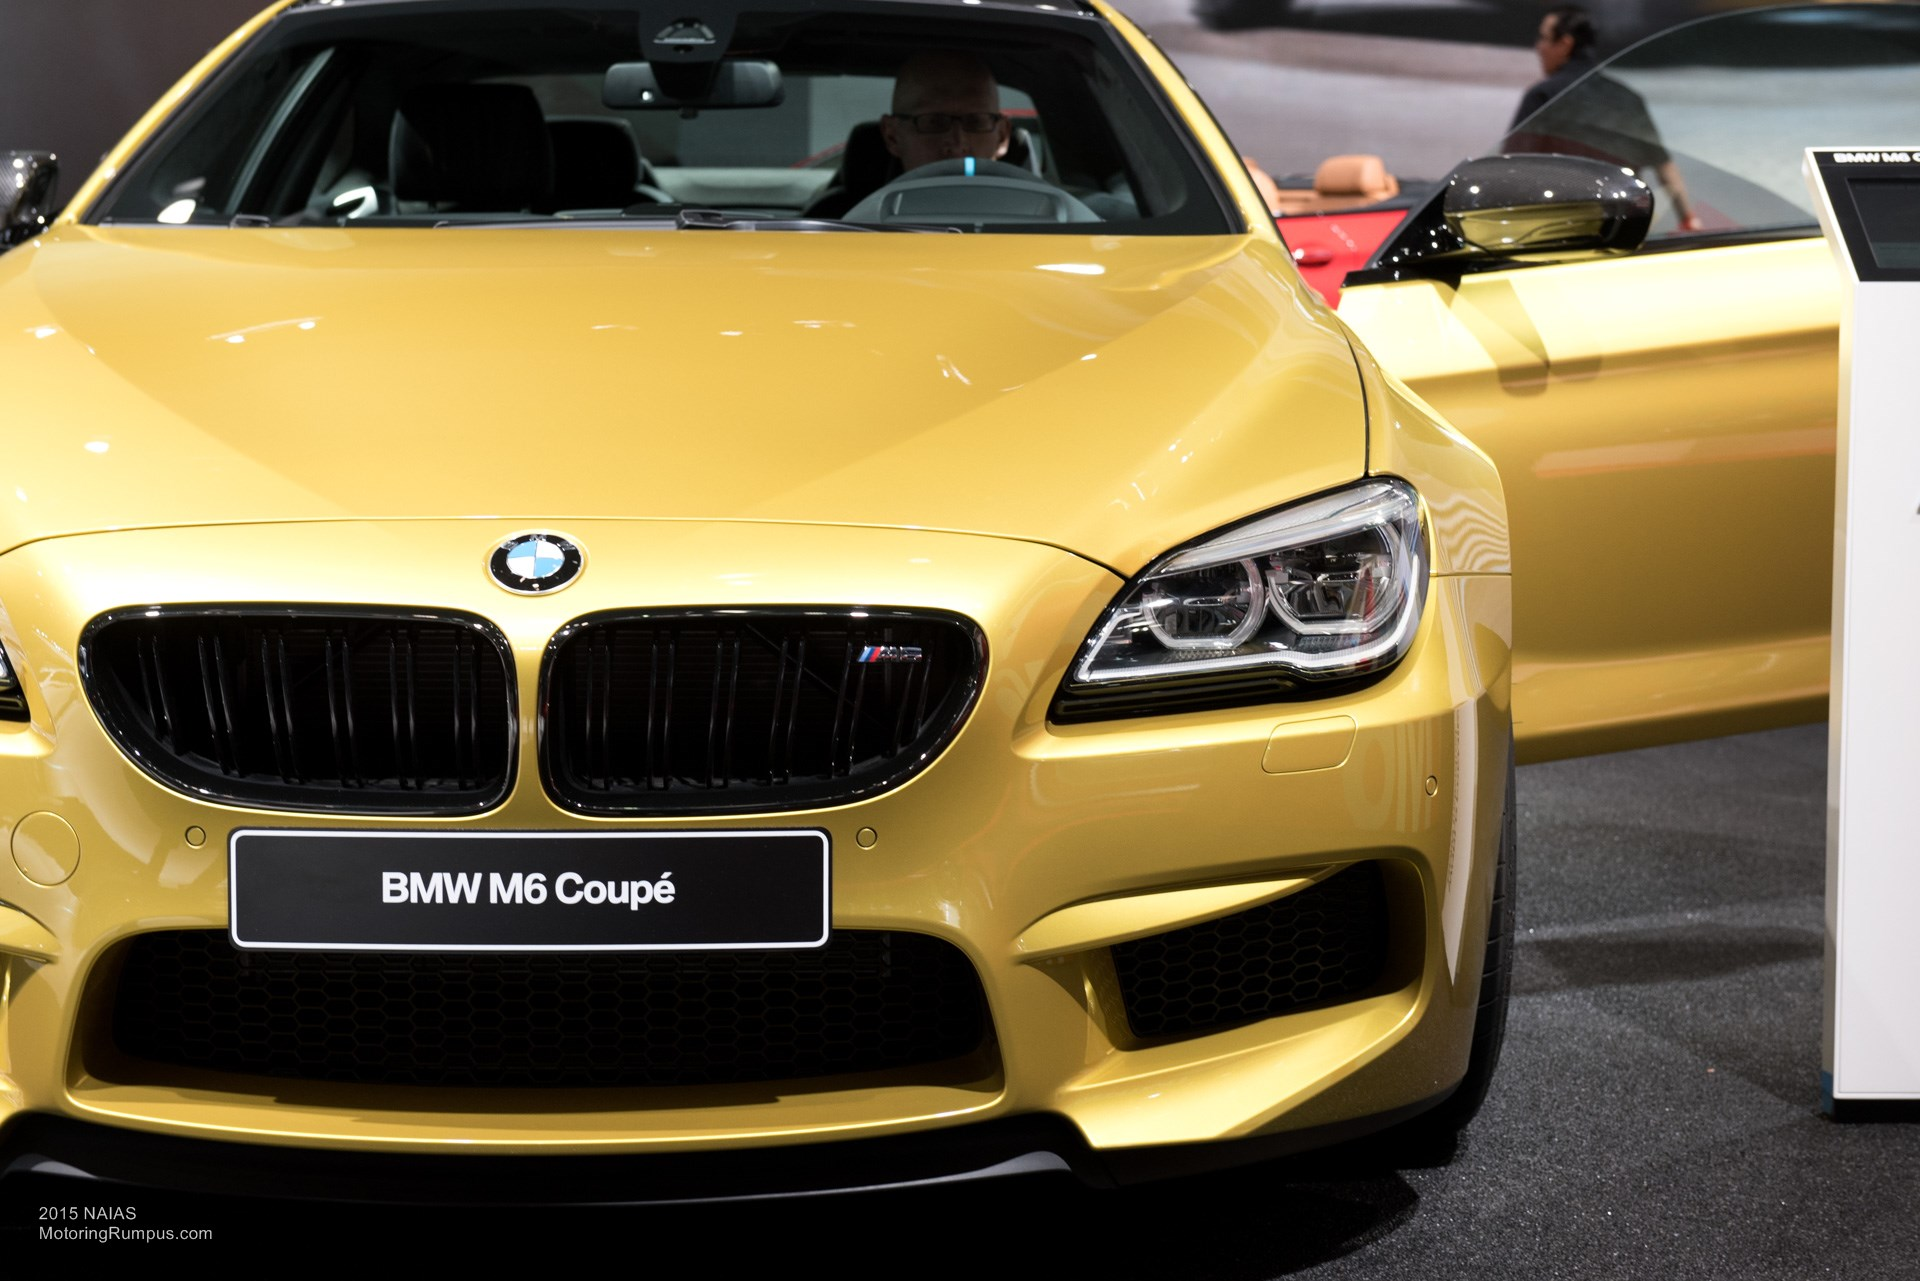 2015 NAIAS BMW M6 Front